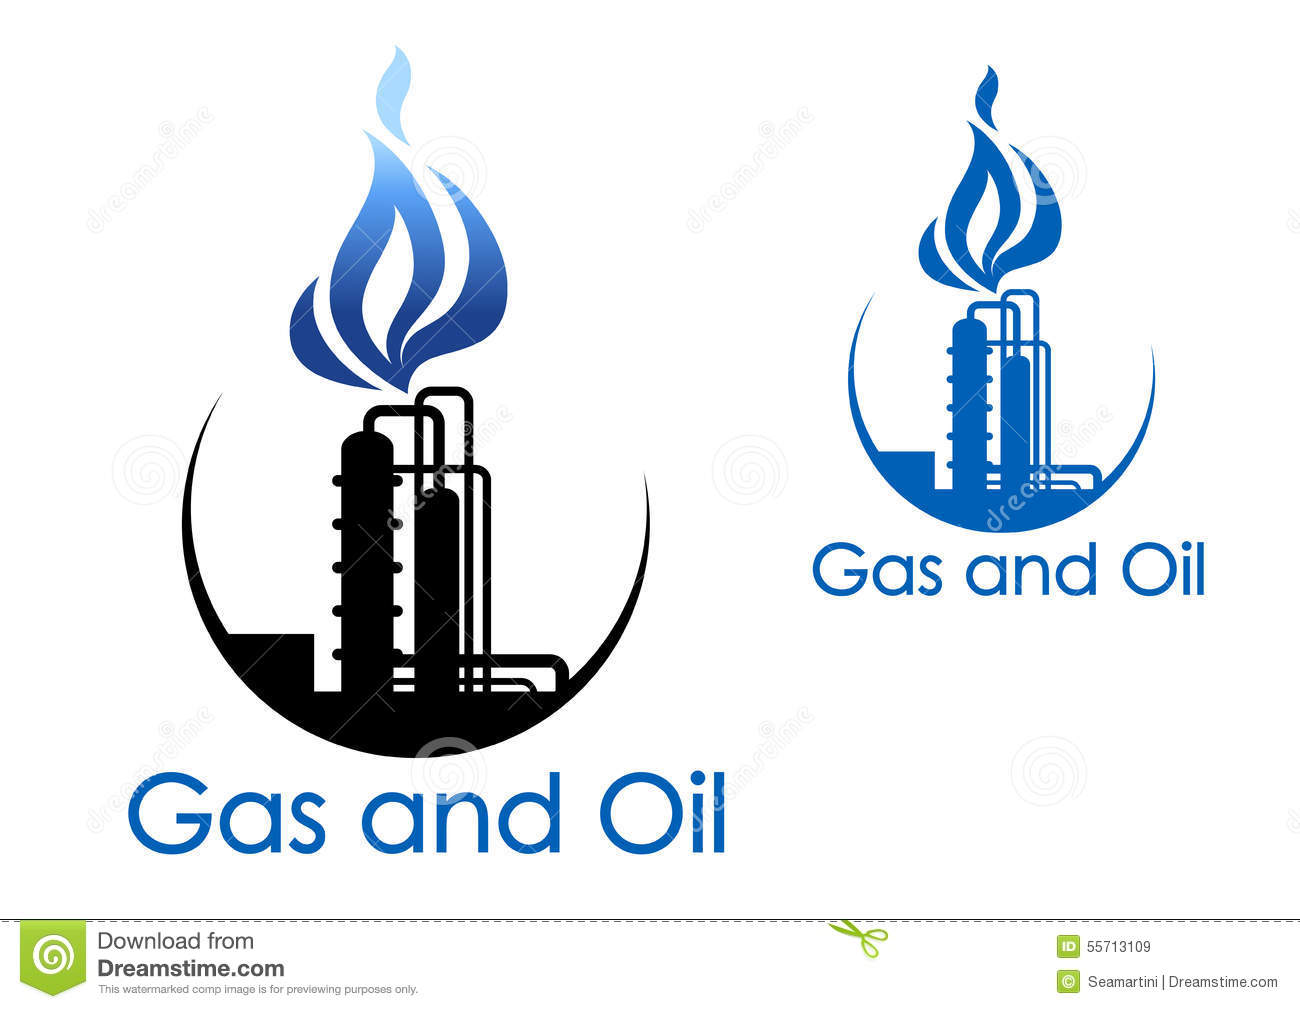 What is the trading symbol for oil most trusted binary options to the ice brent crude oil index price as published one day after the final trading day daniel dicker saudi arabia is doing everything it can to cool biocorpaavc Gallery